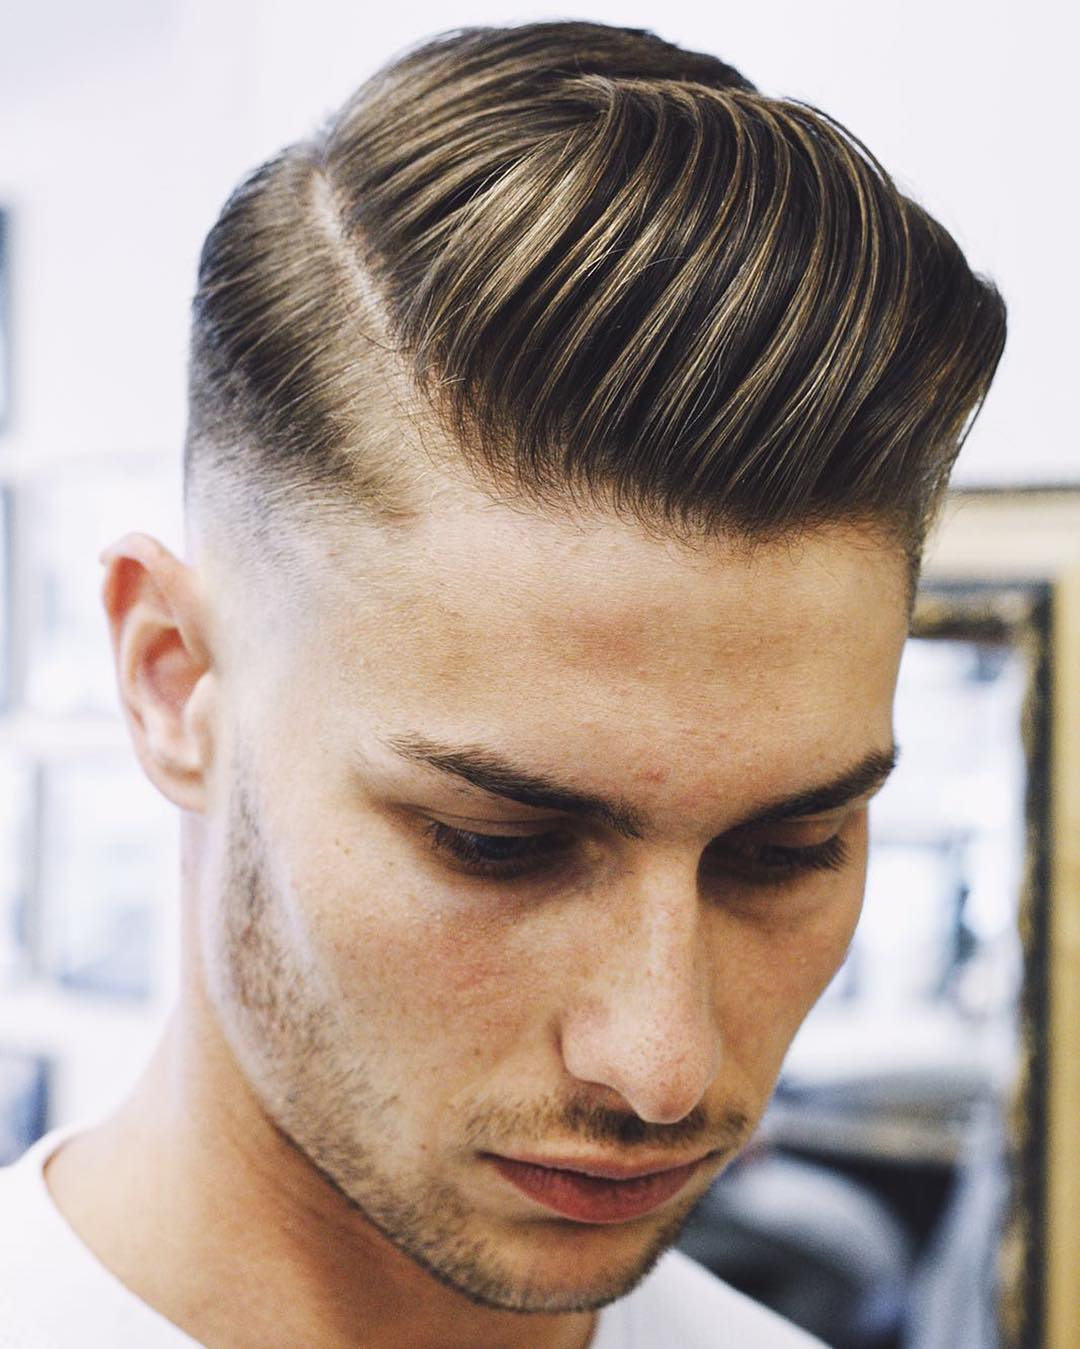 Top 100 Men\'s Haircuts + Hairstyles For Men (November 2018 Update)